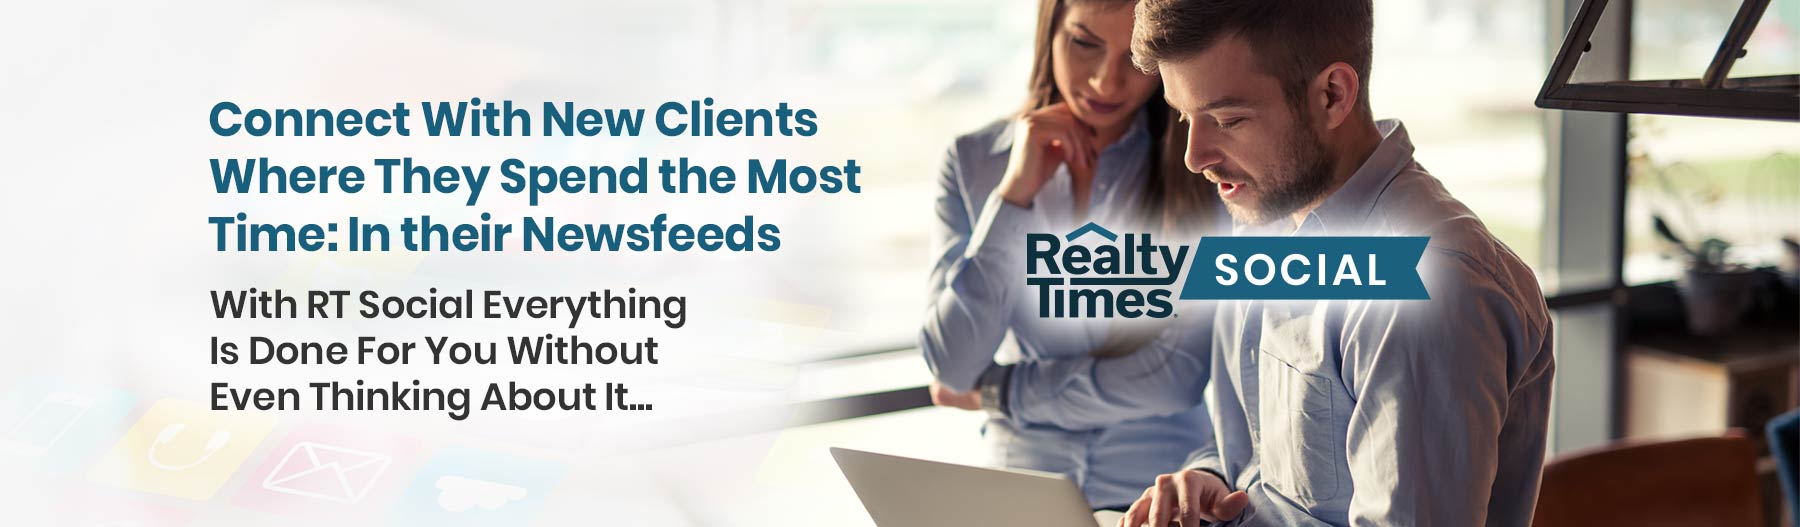 Connect With New Clients Where They Spend the Most Time: In their Newsfeeds